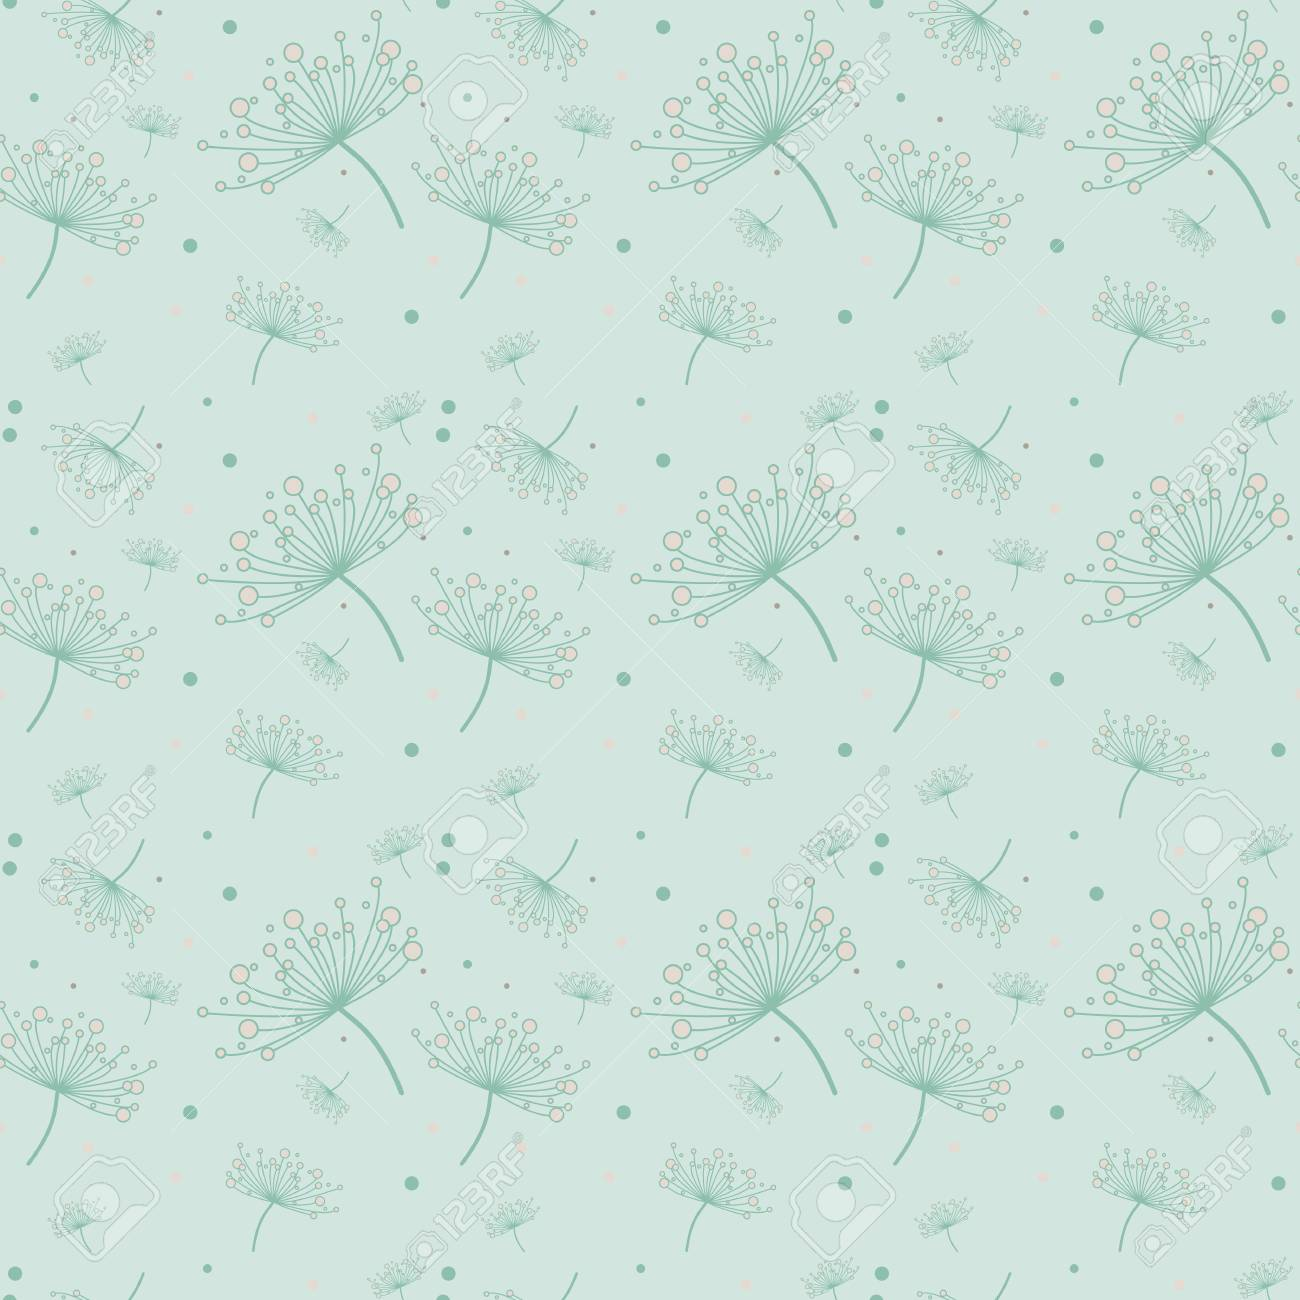 Simple Seamless Pattern With Dandelions In Mint And Light Pink